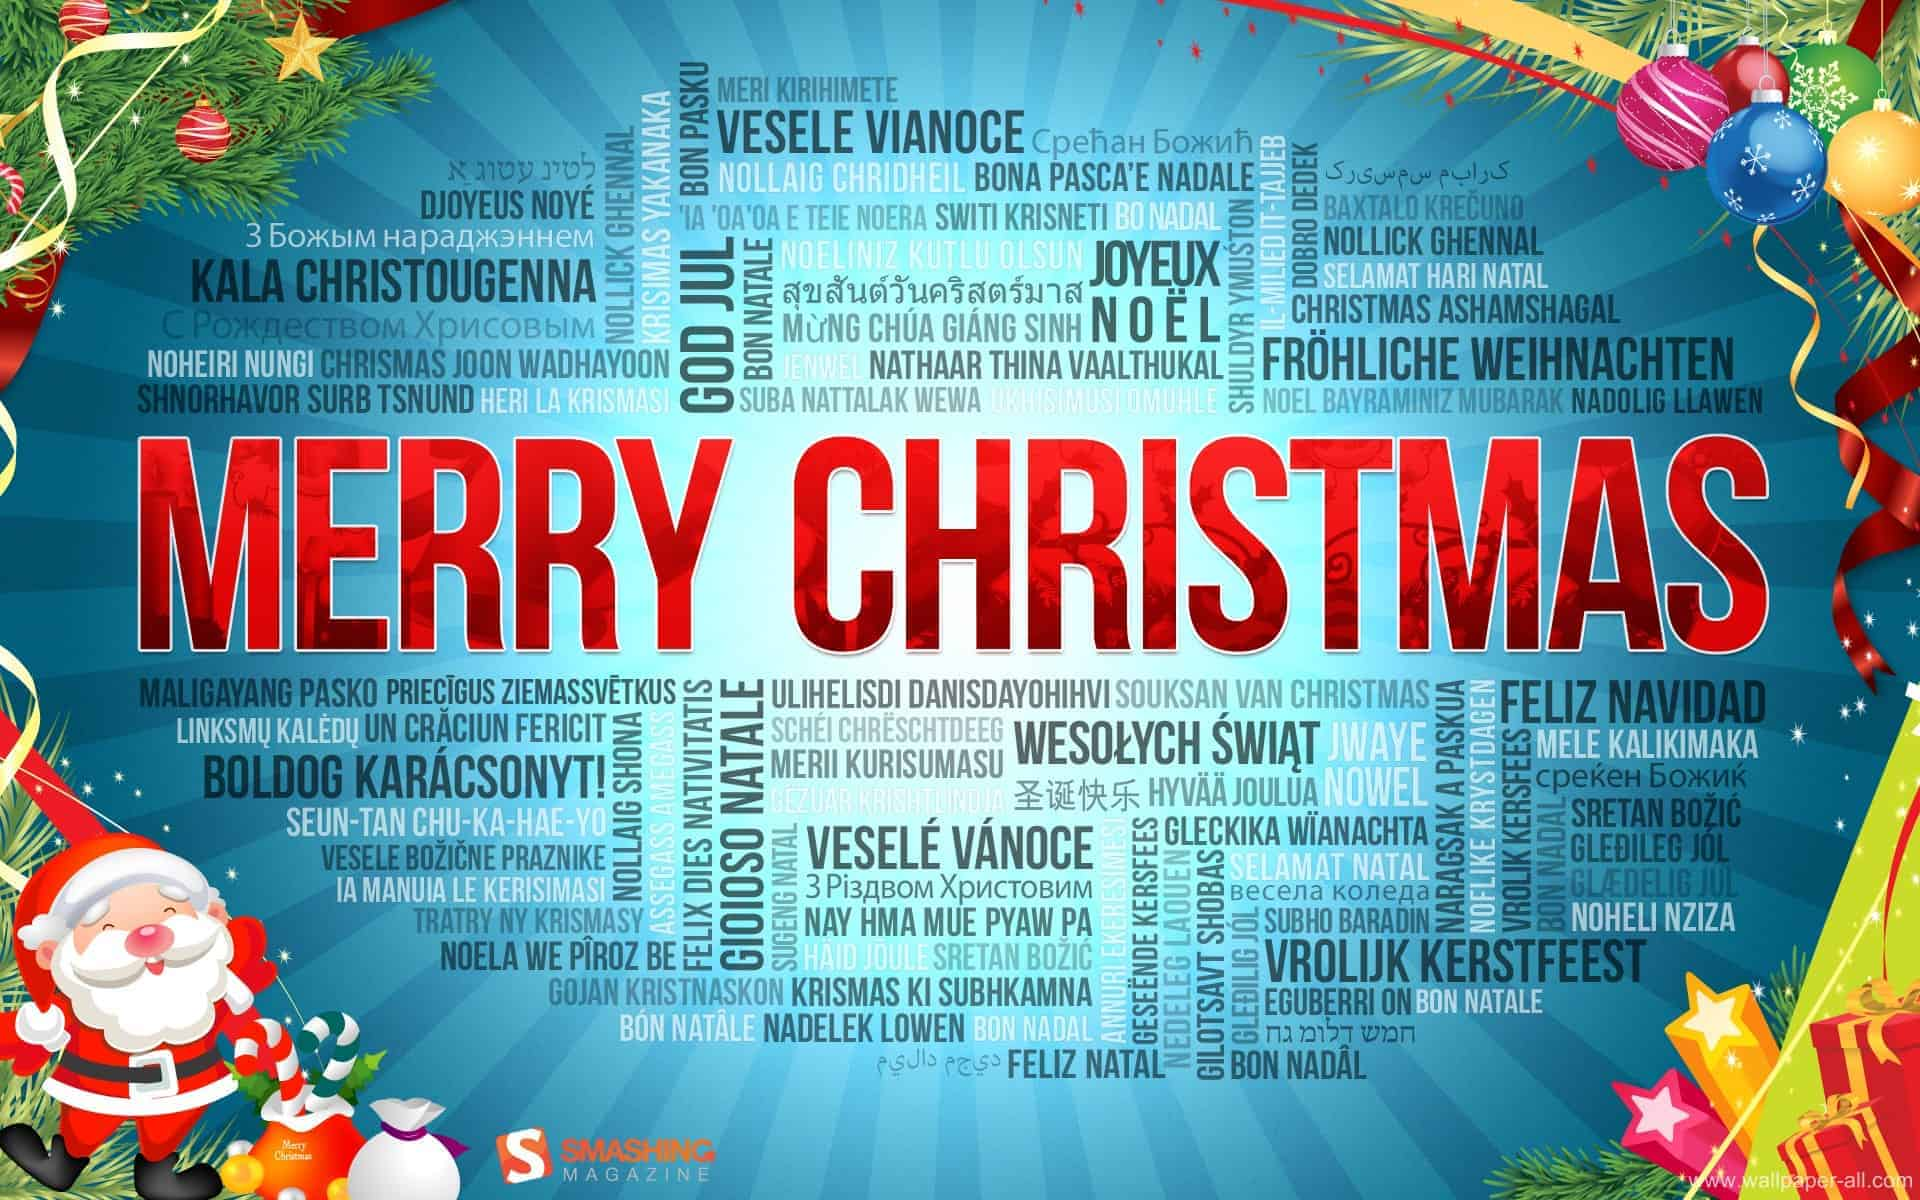 Merry Christmas and Happy New Year in many languages - Terminology ...